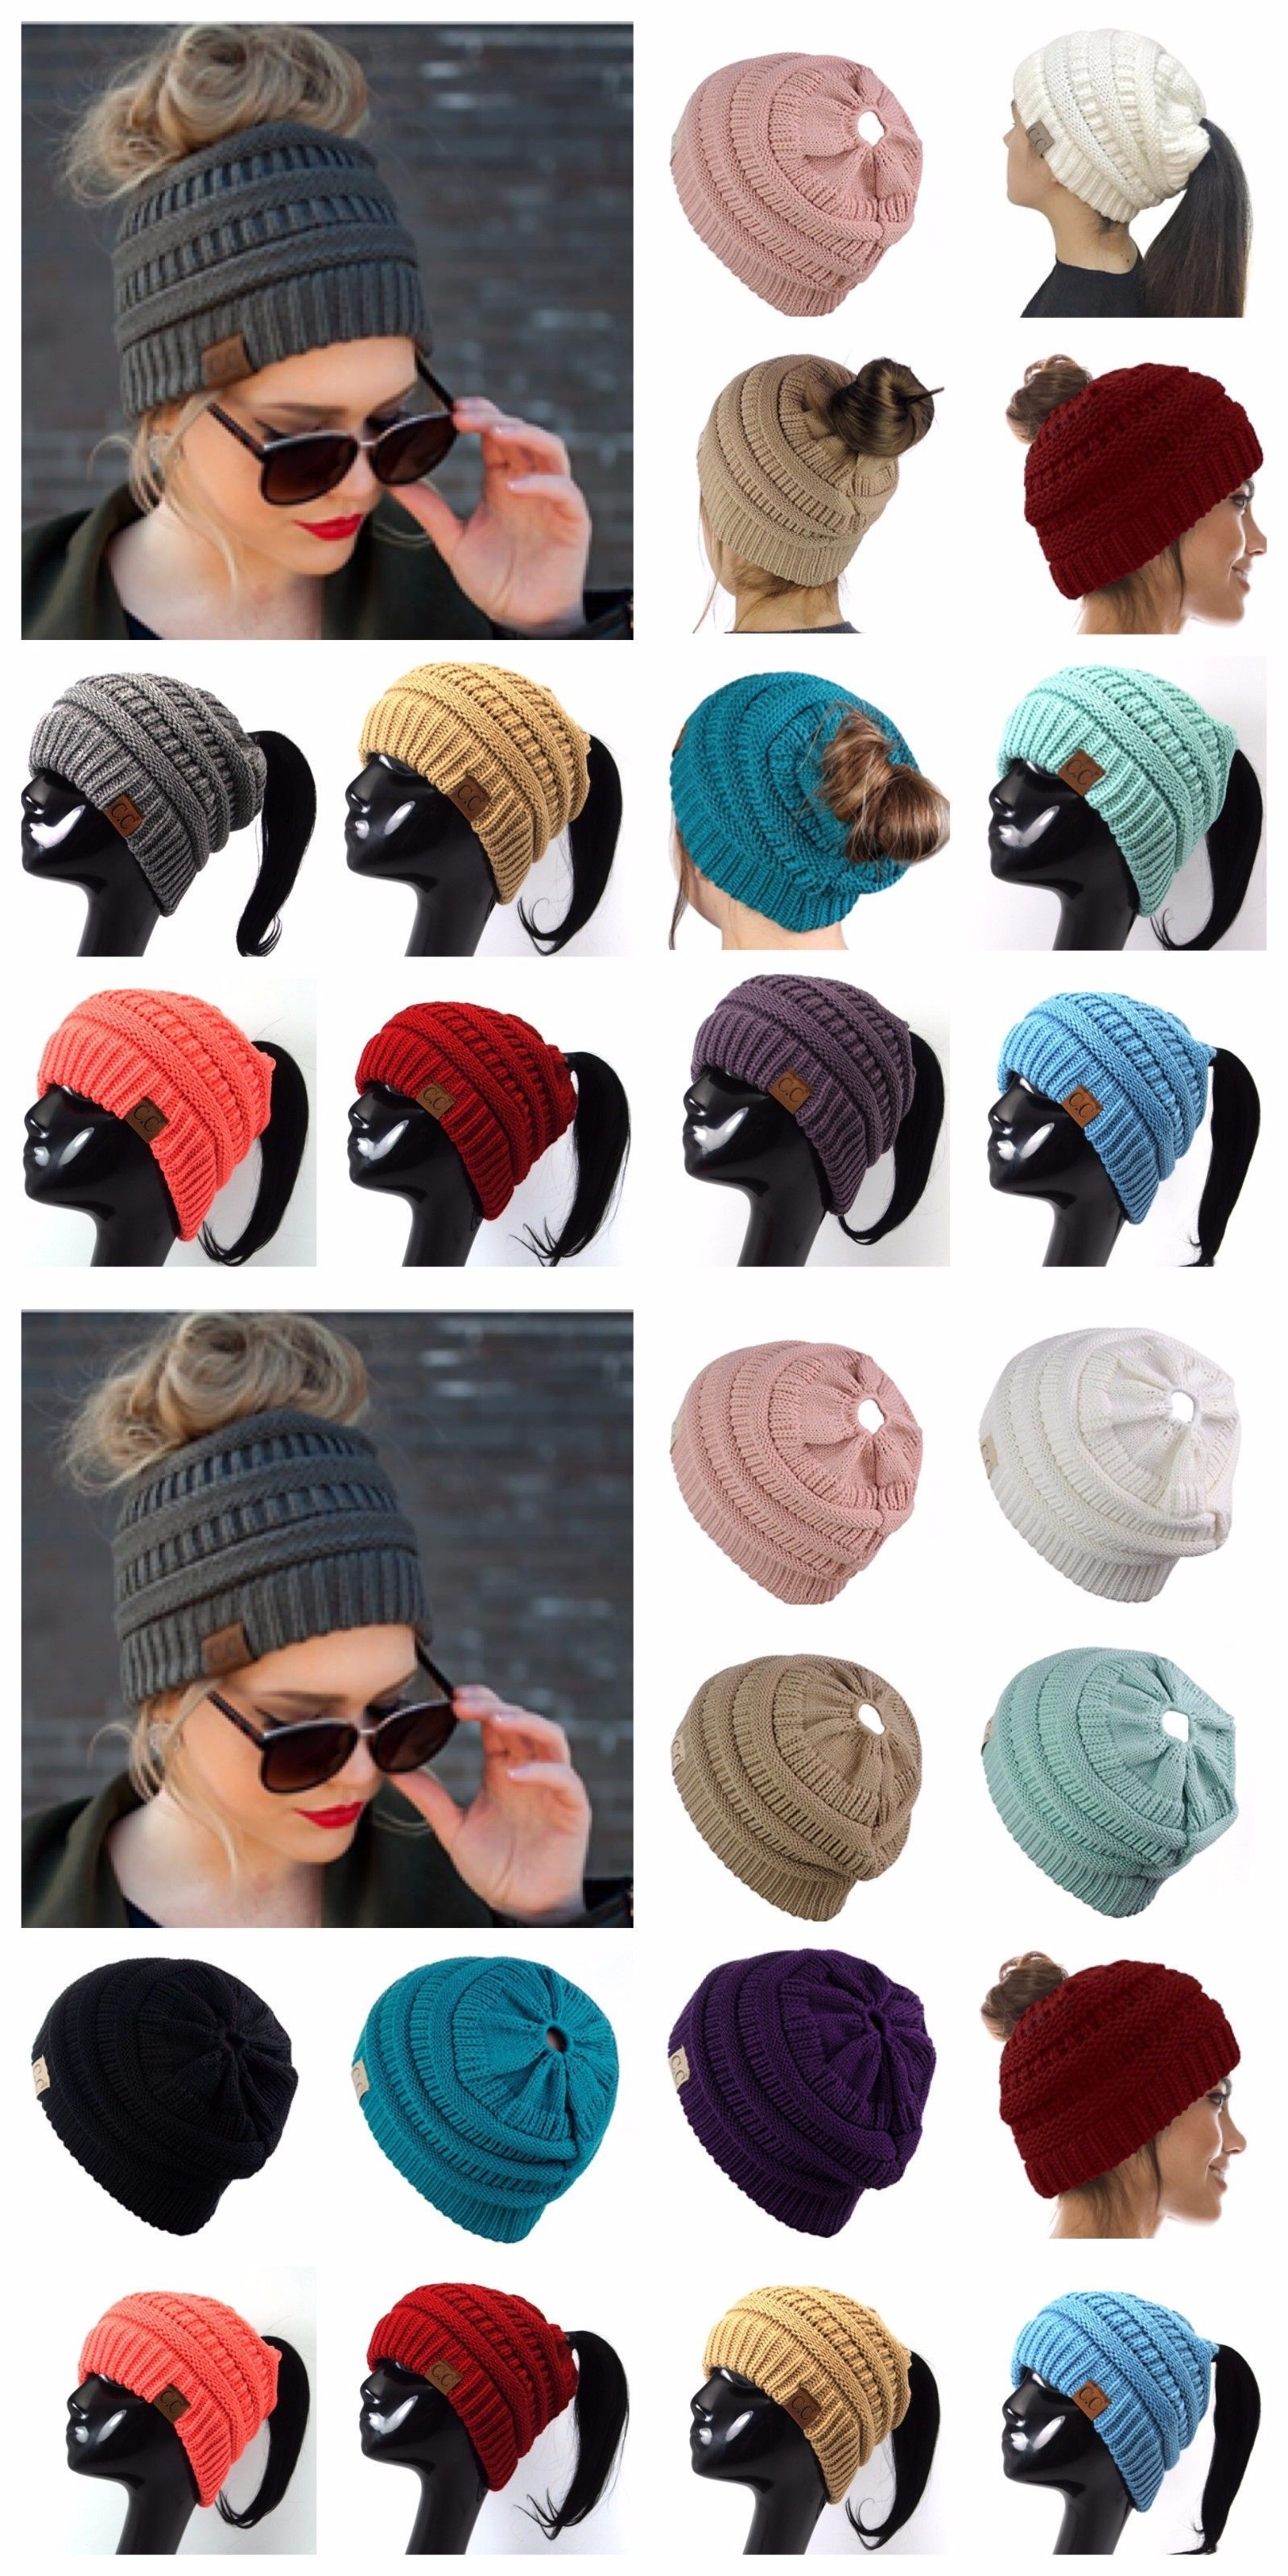 Hats 45230  Women Cc Beanie Ponytail Hat Bubble Knit Fashion Winter Slouch  Hats Oversize -  BUY IT NOW ONLY   13.97 on  eBay  women  beanie  ponytail  ... fc3349dcfaa2